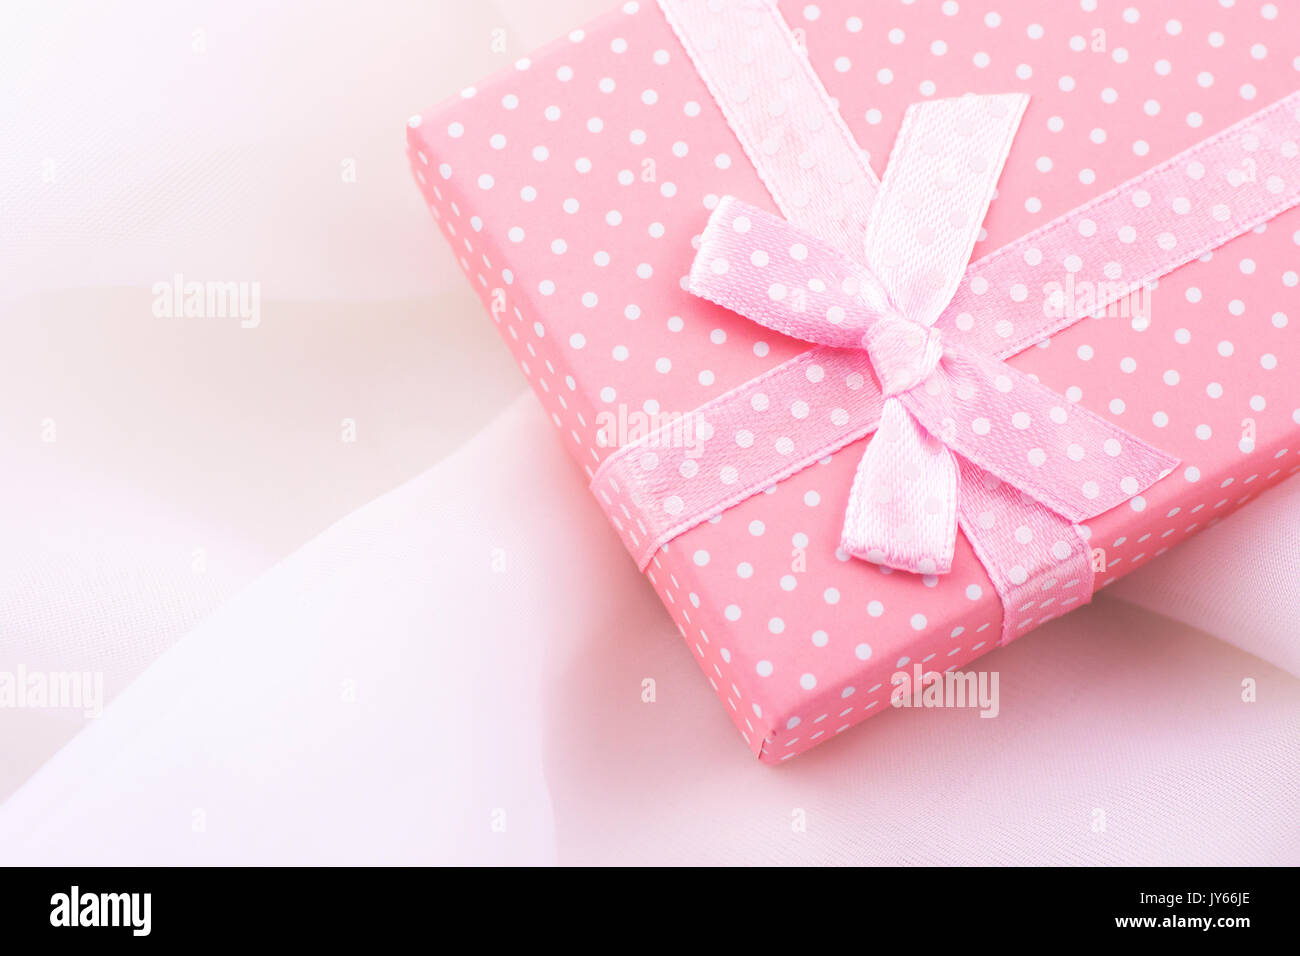 Pink Gift Box Tied With Satin Ribbon With Bow On Delicate White